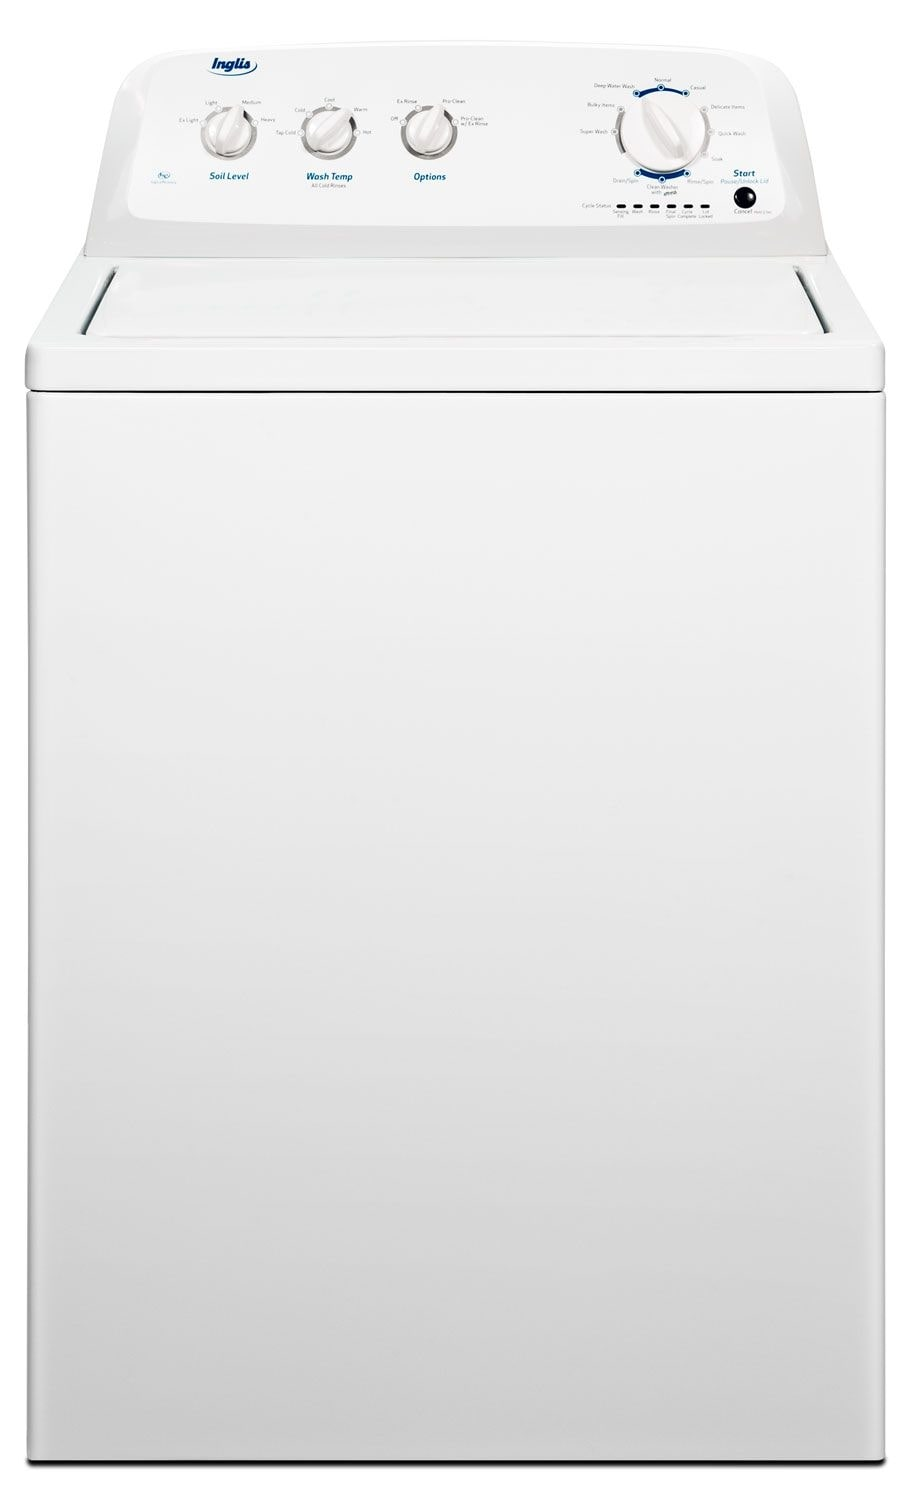 Inglis 4.2 Cu. Ft. High-Efficiency Top-Load Washer - White